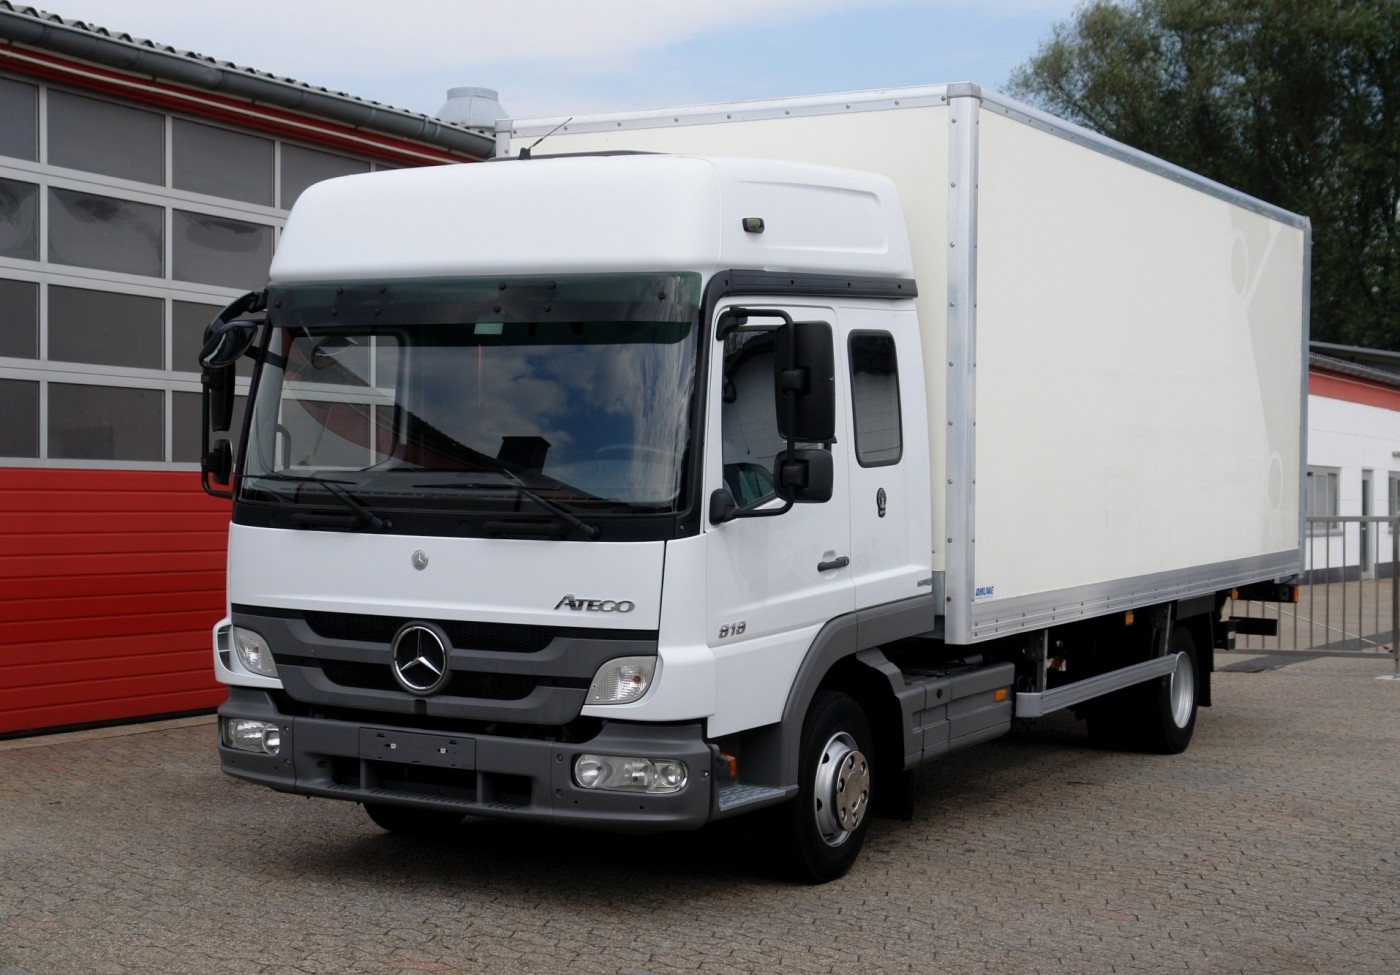 Mercedes-Benz - Atego 818 RL closed box 6,20m long cabin airco manual gearbox air suspension liftgate 1500kg EURO5 TÜV new!